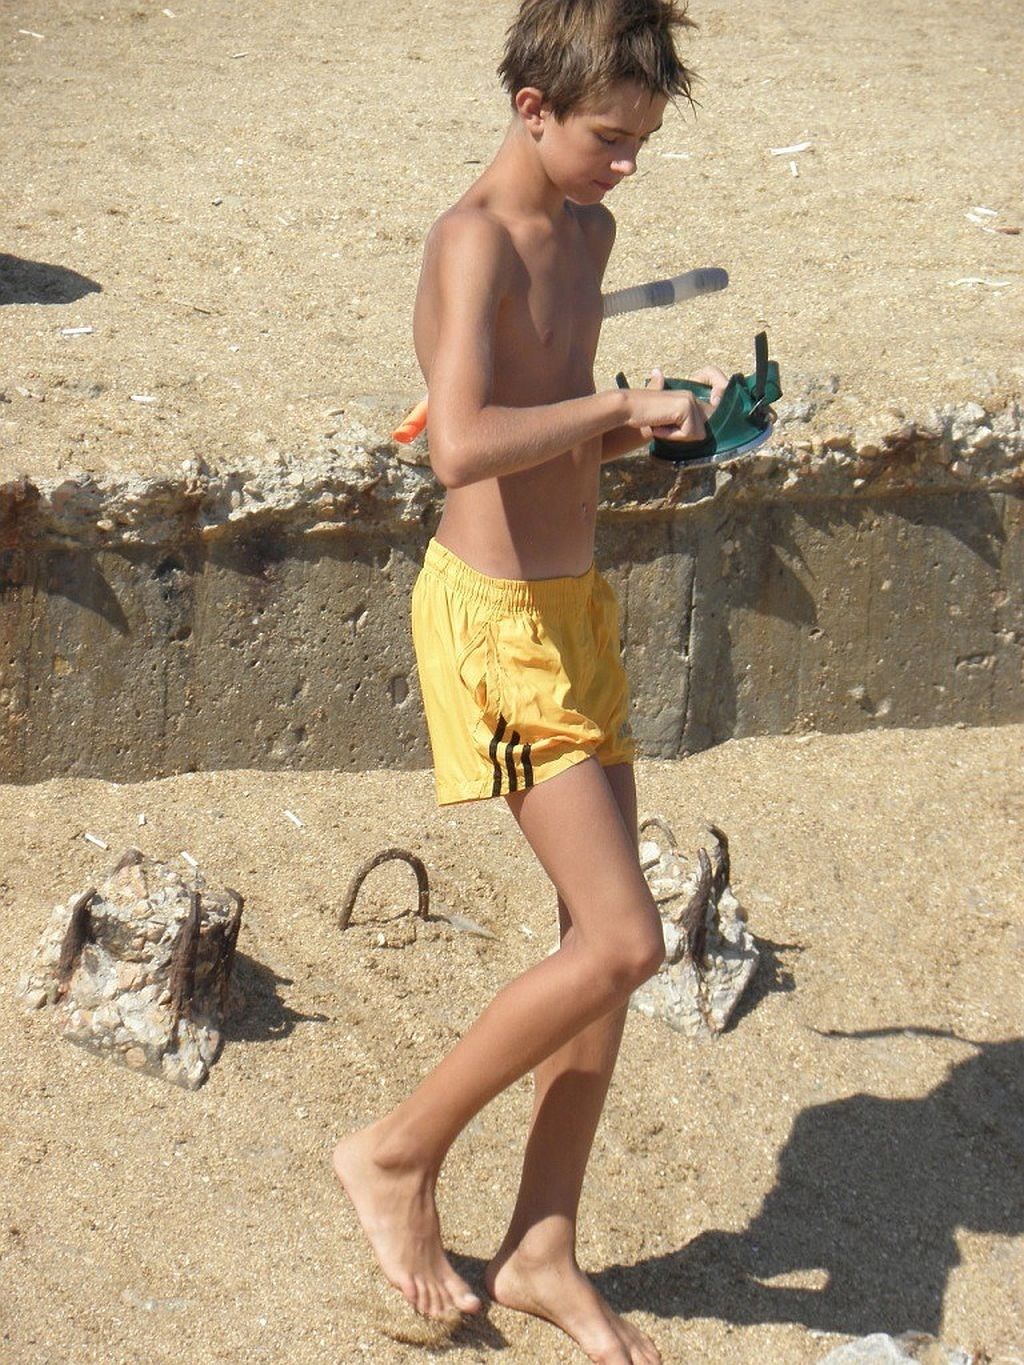 Pin by Shawn Graham on Beauty of boys | Boys summer